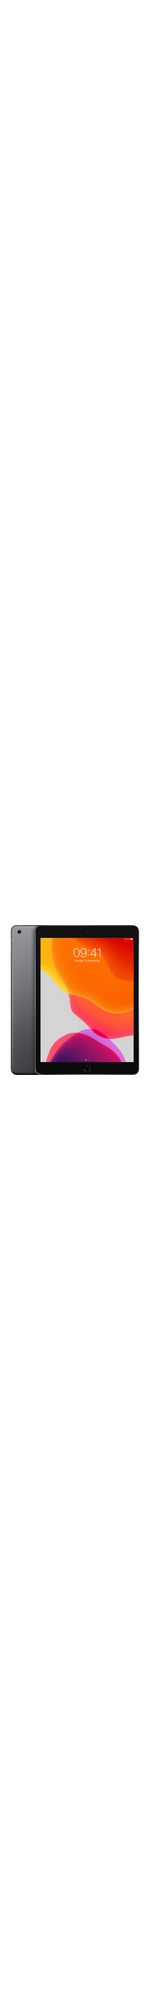 Apple iPad 7th Generation Tablet - 25.9 cm 10.2And#34; - 32 GB Storage - iPad OS - Space Grey - Apple A10 Fusion SoC - 1.2 Megapixel Front Camera - 8 Megapixel Rear Ca